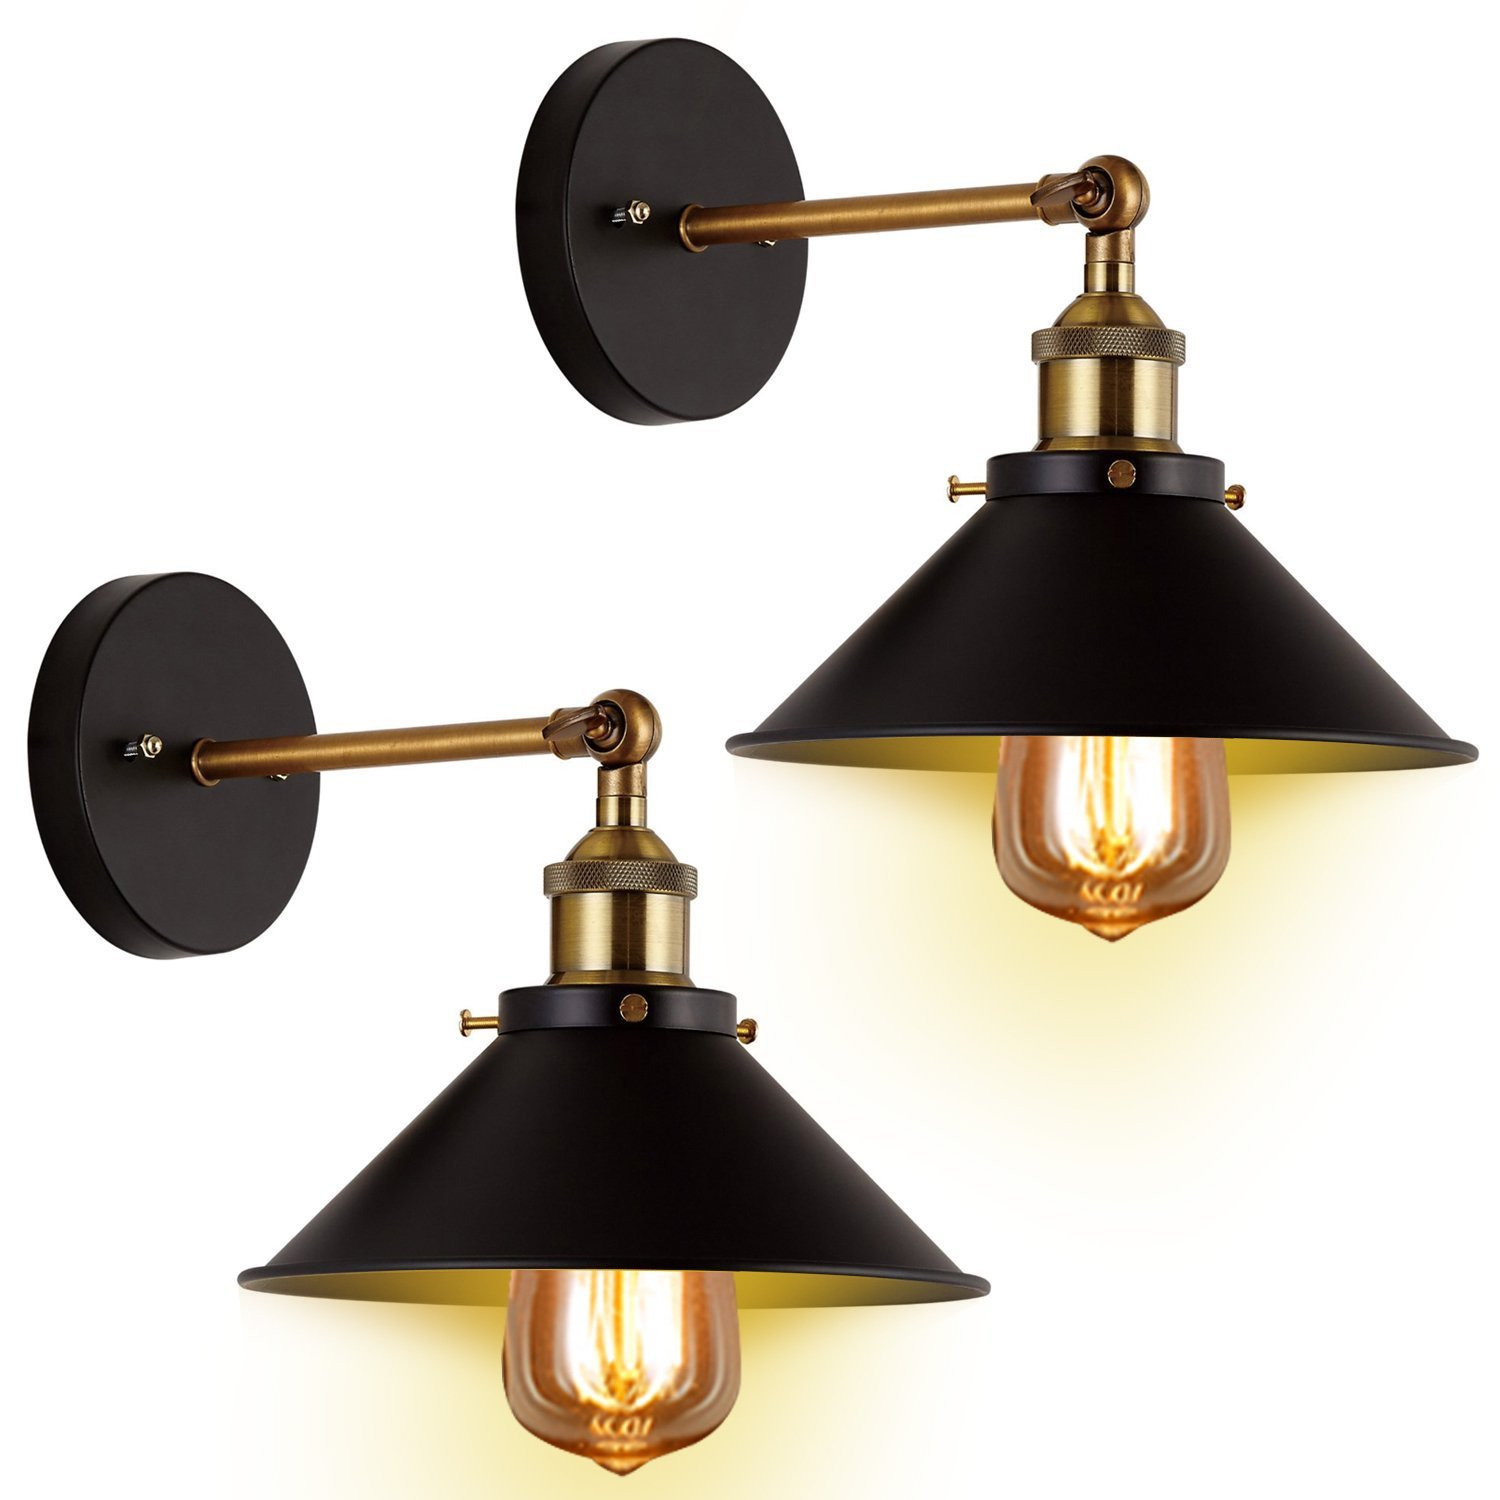 Wall Sconces Light 2-Pack Black Wall Industrial Vintage Edison Simplicity Lamp Fixture Steel Finished for Cafe Club 2 Light